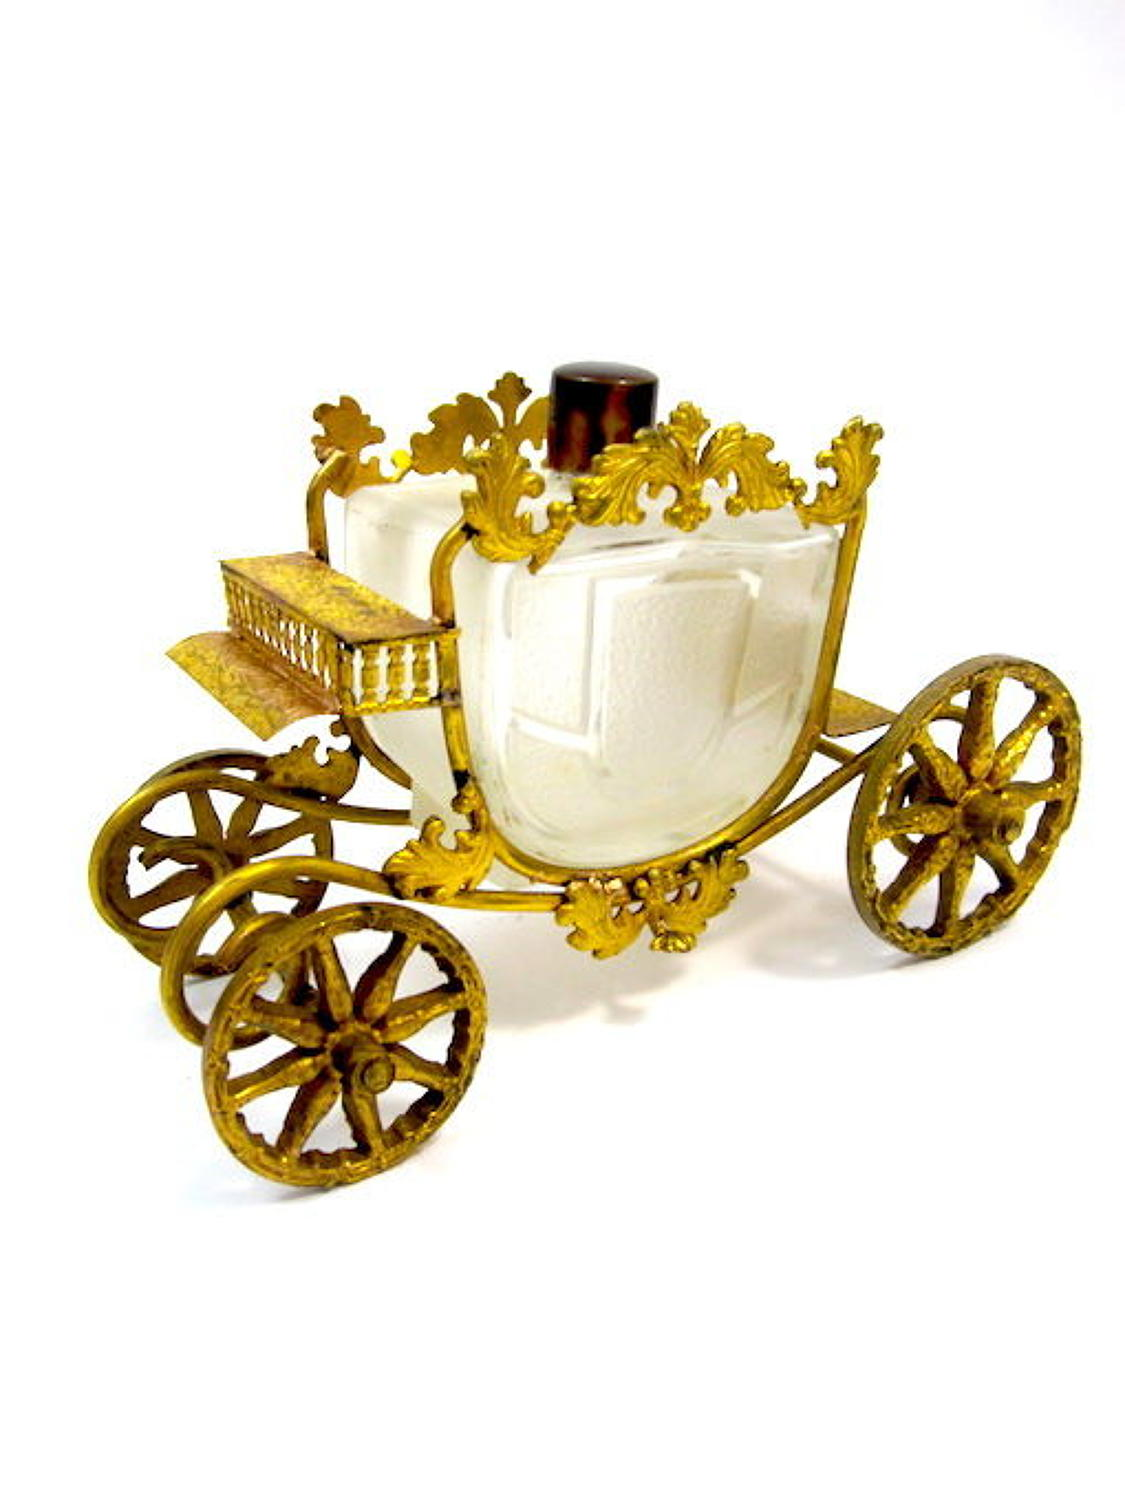 Unusual Antique French Glass Perfume Bottle and Dore Bronze Carriage